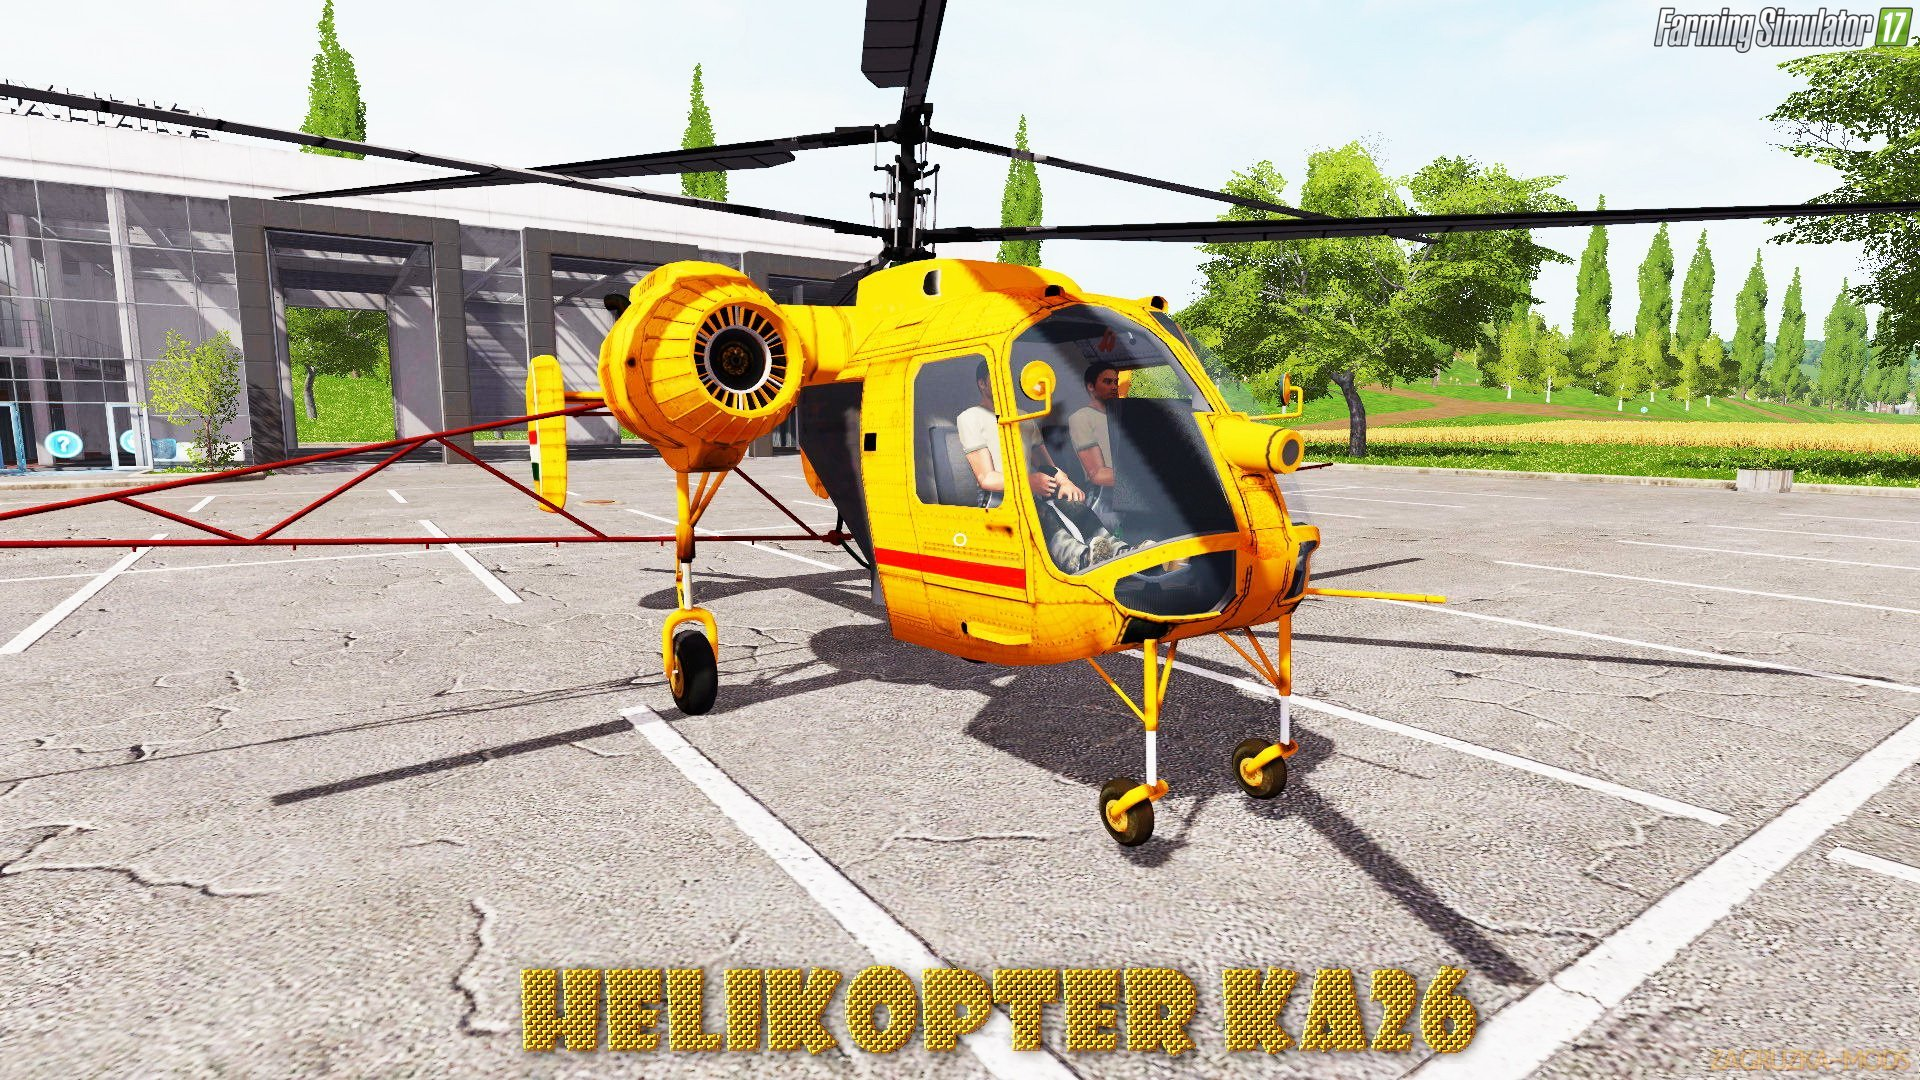 Helikopter KA26 v1.0 for FS 17